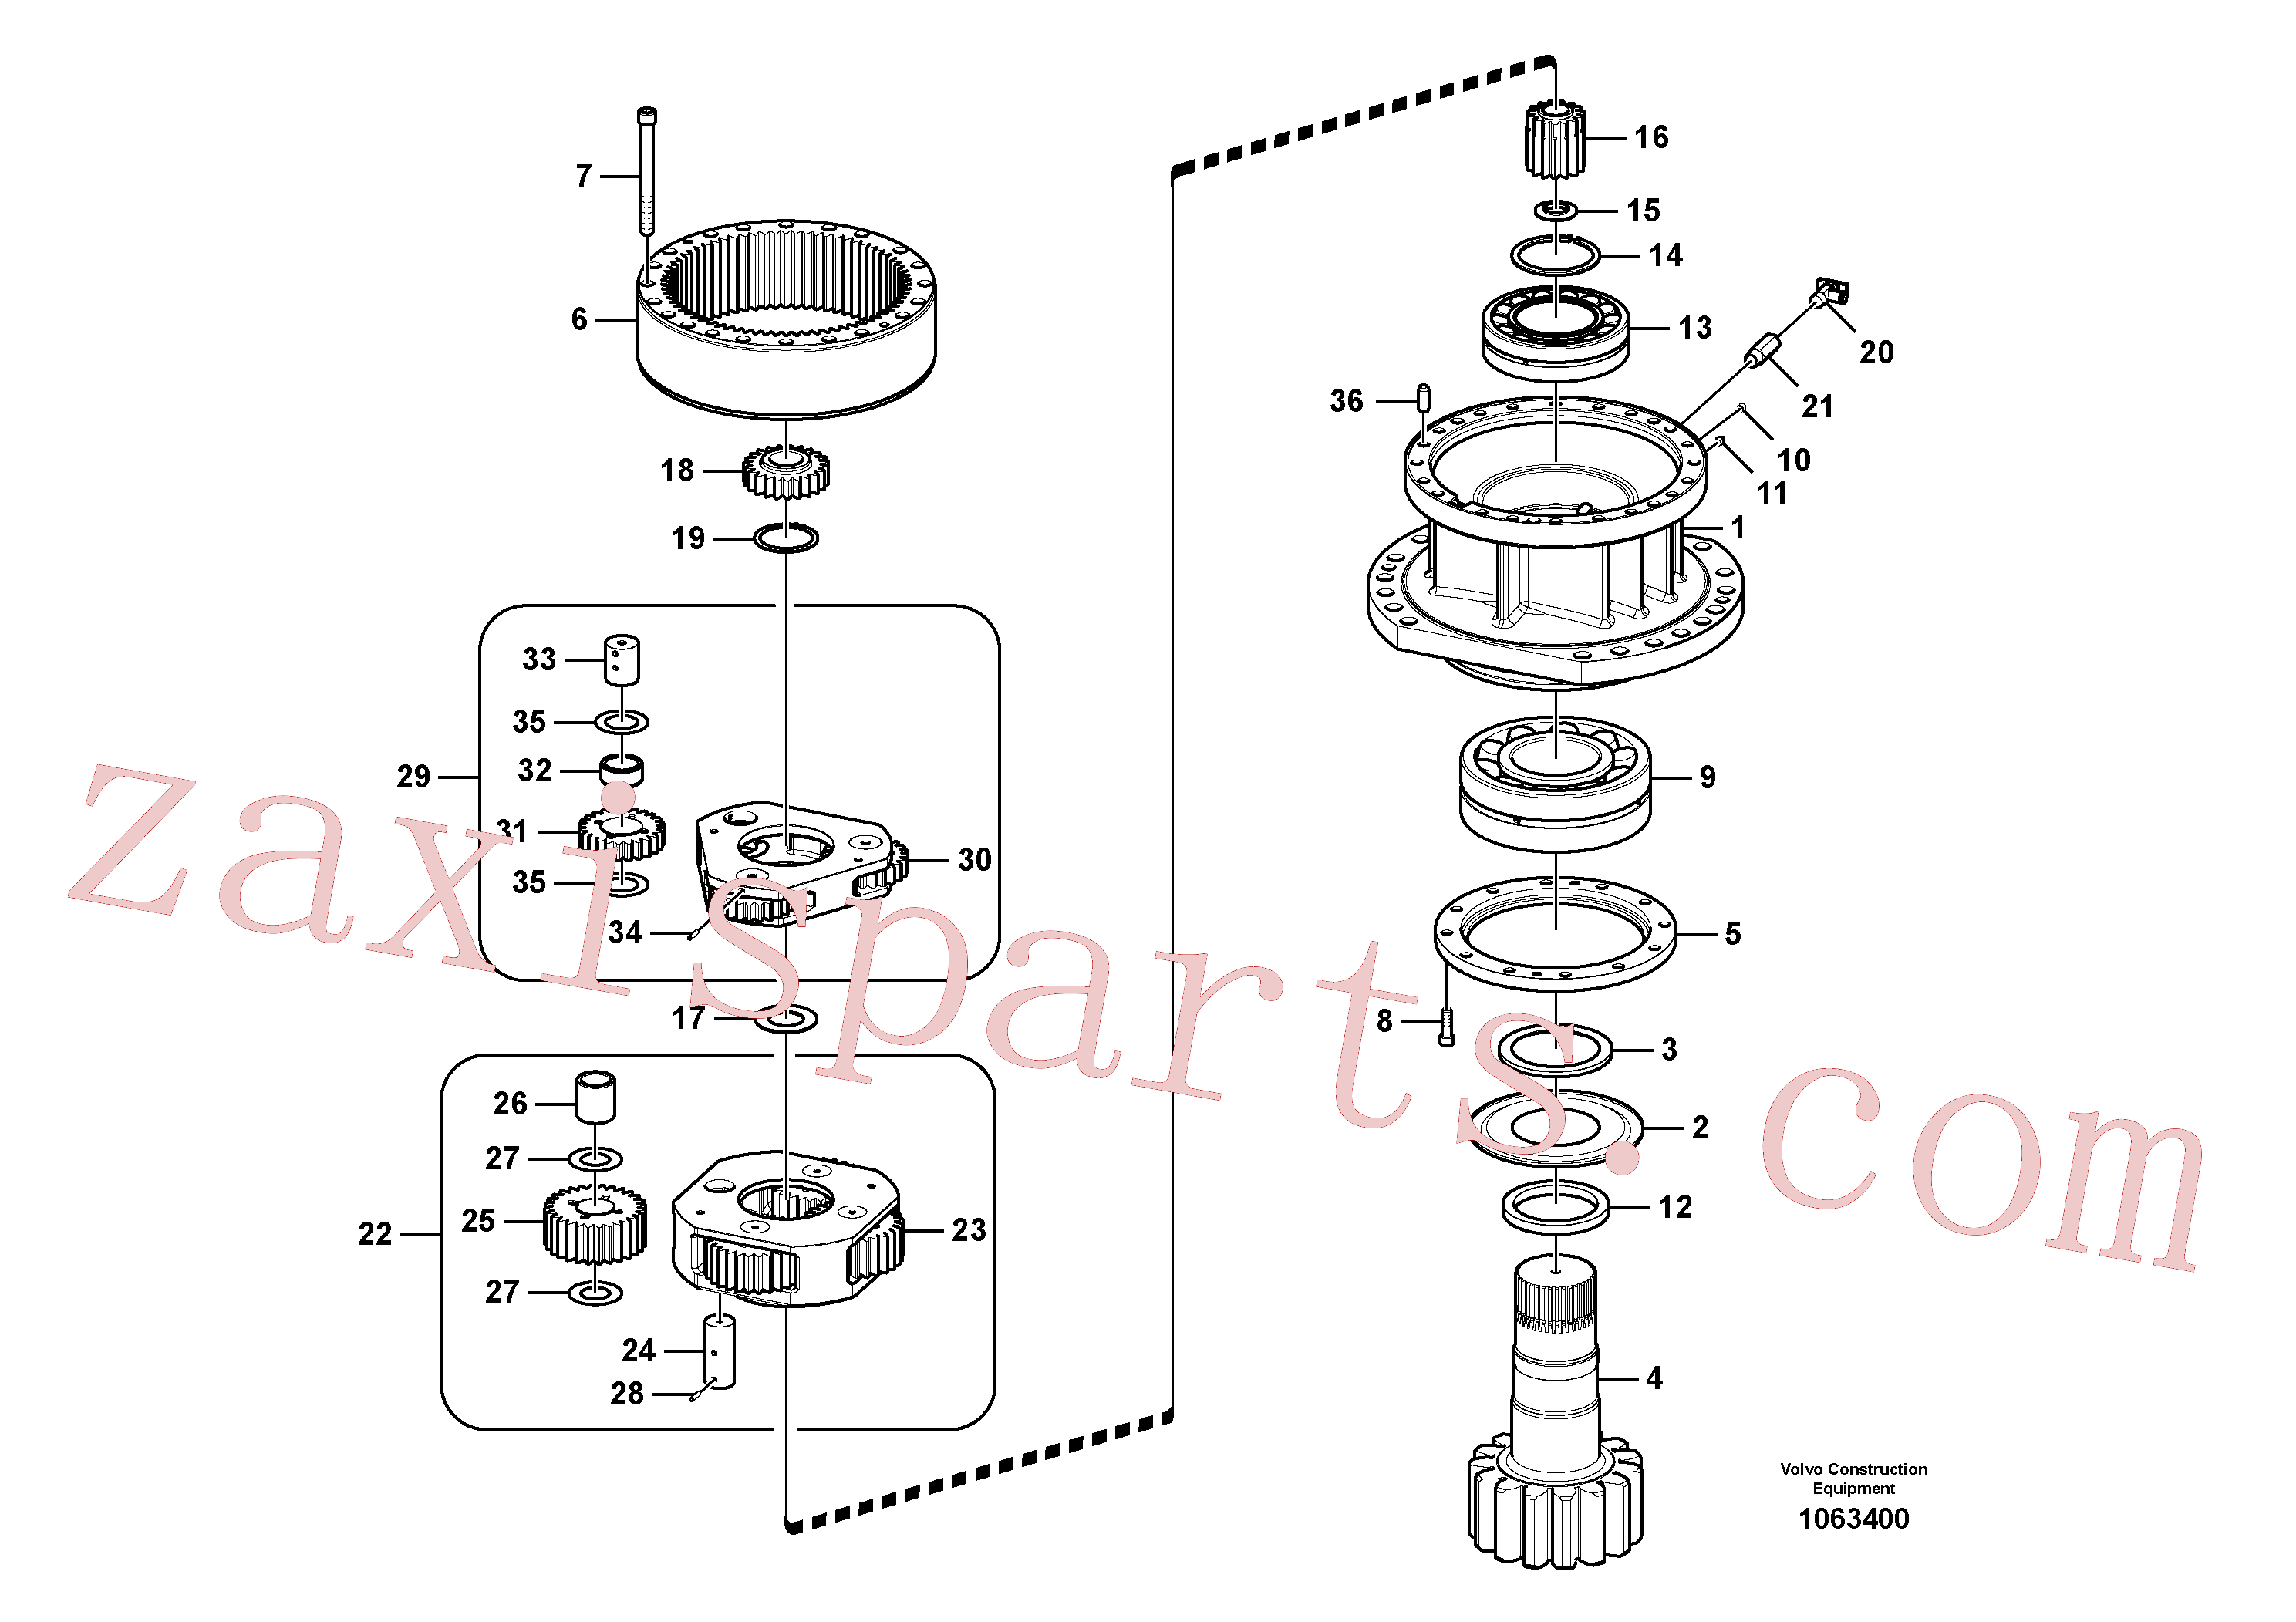 VOE14547277 for Volvo Swing gearbox(1063400 assembly)